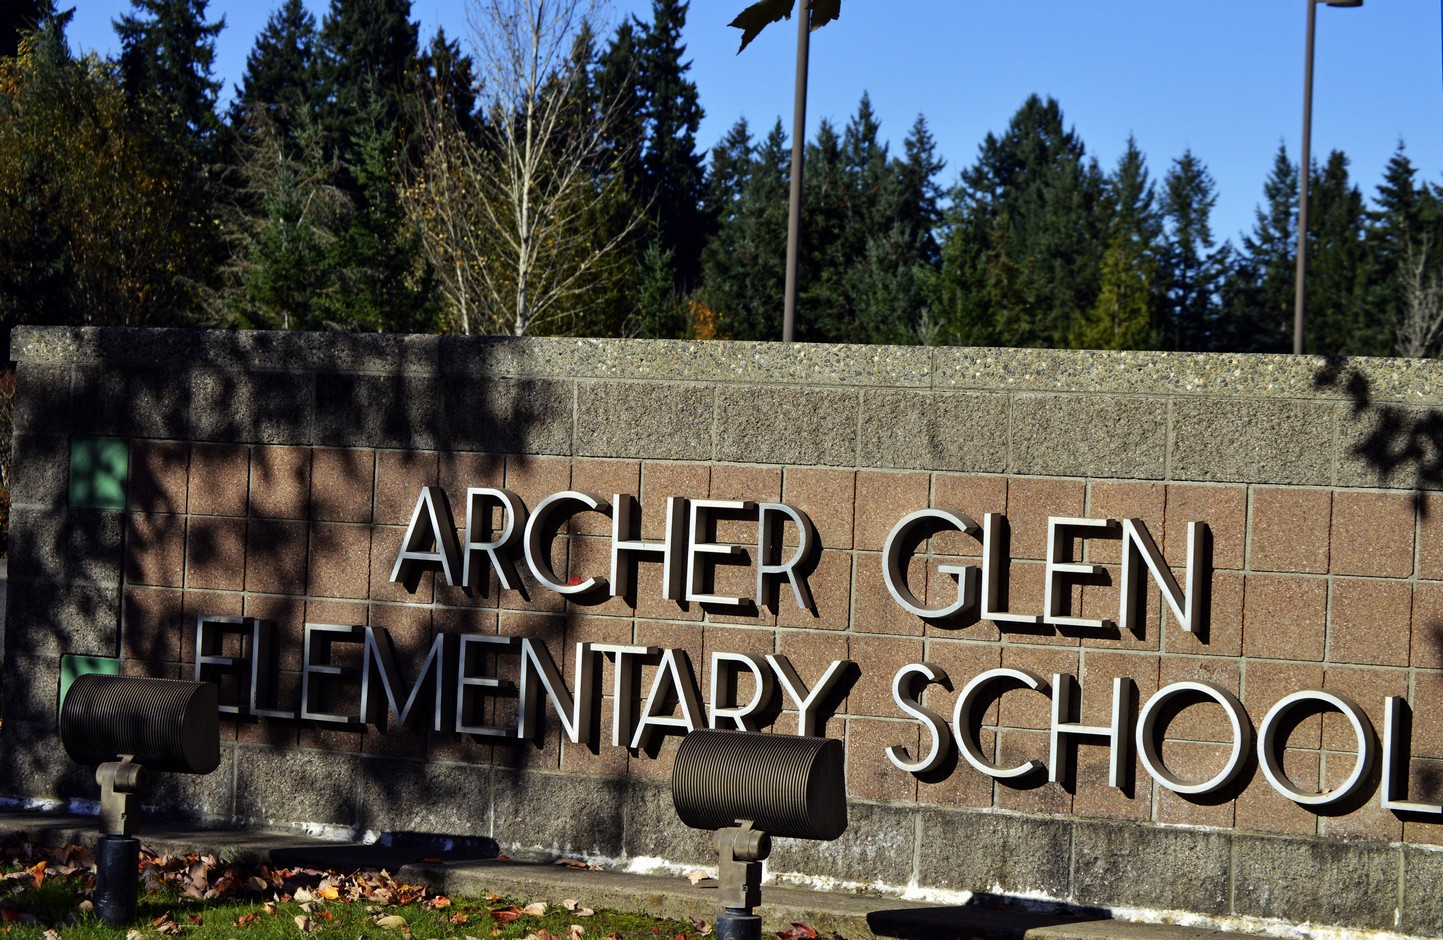 30-sherwood-oregon-archer-glen-elementary-school-the-kelly-group-real-estate